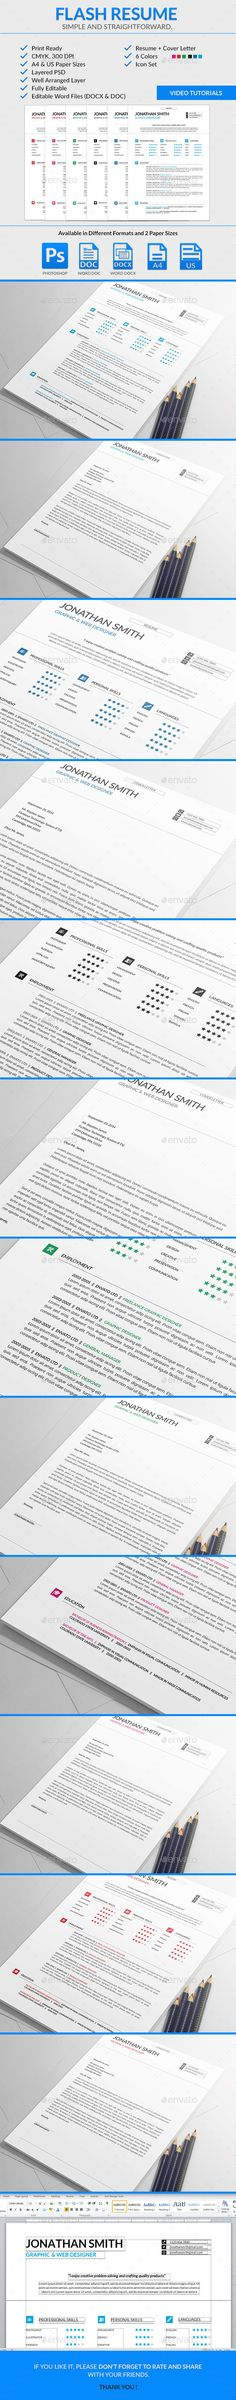 Resume u2014 Photoshop PSD #layered #letter u2022 Available here - photoshop resume templates